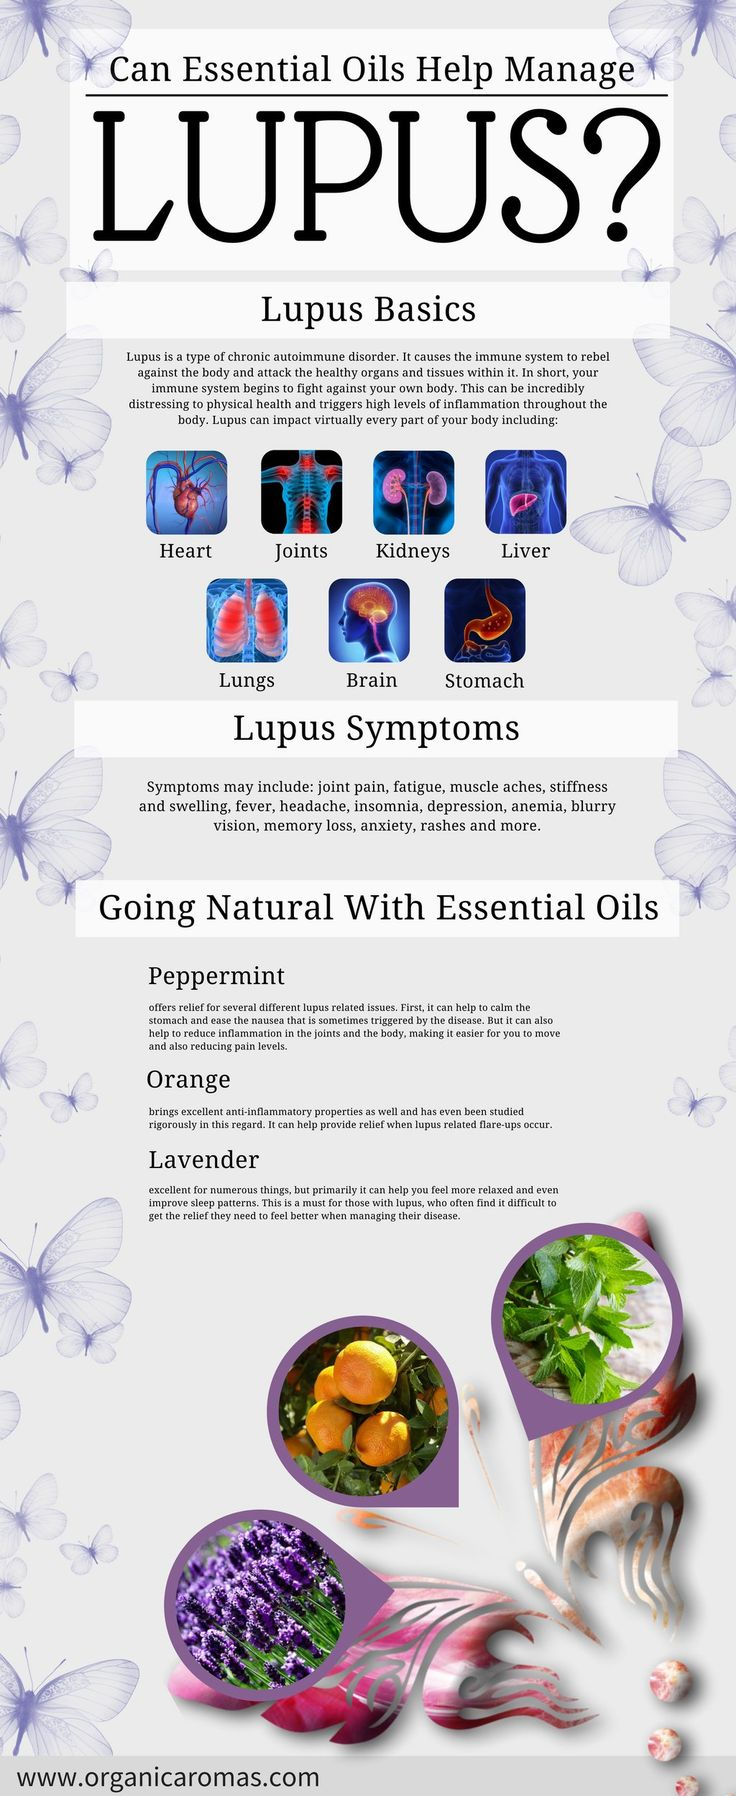 Can Essential Oils Help Manage Lupus? #OrganicAromas Looking into natural ways to help manage lupus is something that can ease the need for prescription drugs. While you should always talk to your medical professional and should never quit taking prescription medications just because you're tired of doing so, there are several natural steps you can take that may help – including the use of essential oils.